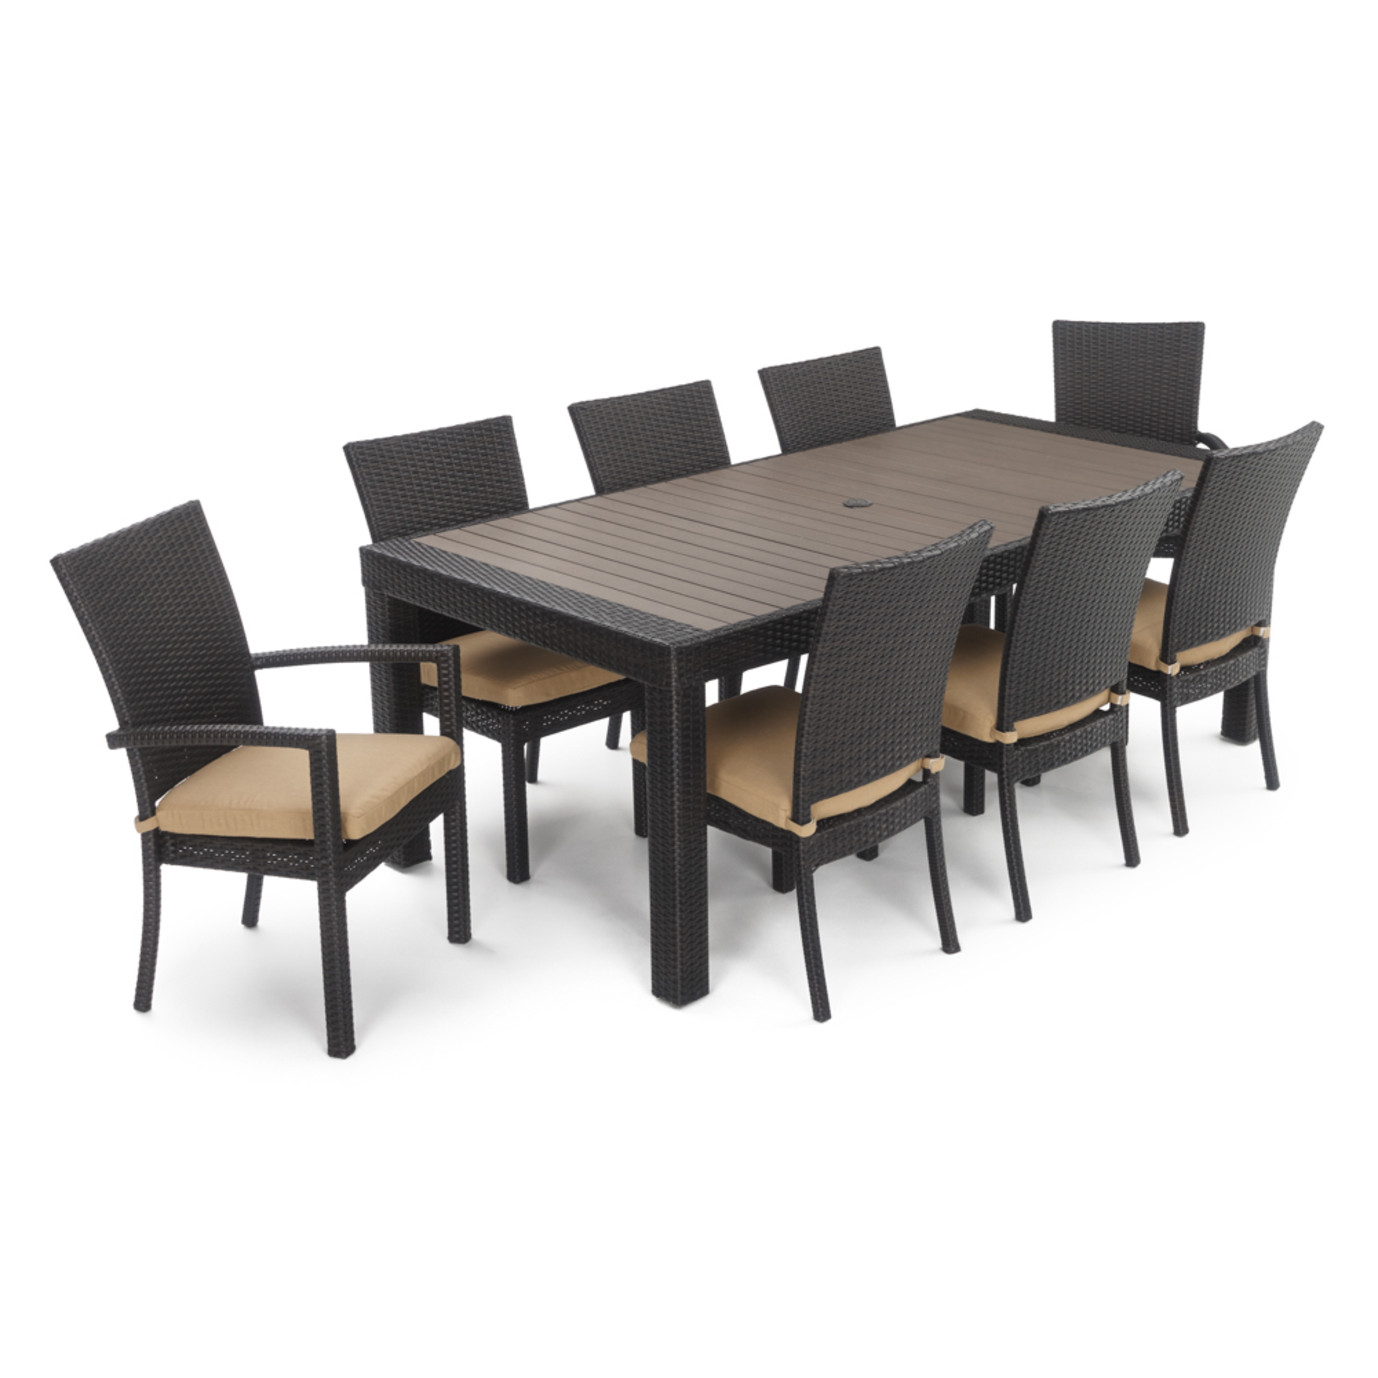 Deco™ 9pc Dining Set - Maxim Beige